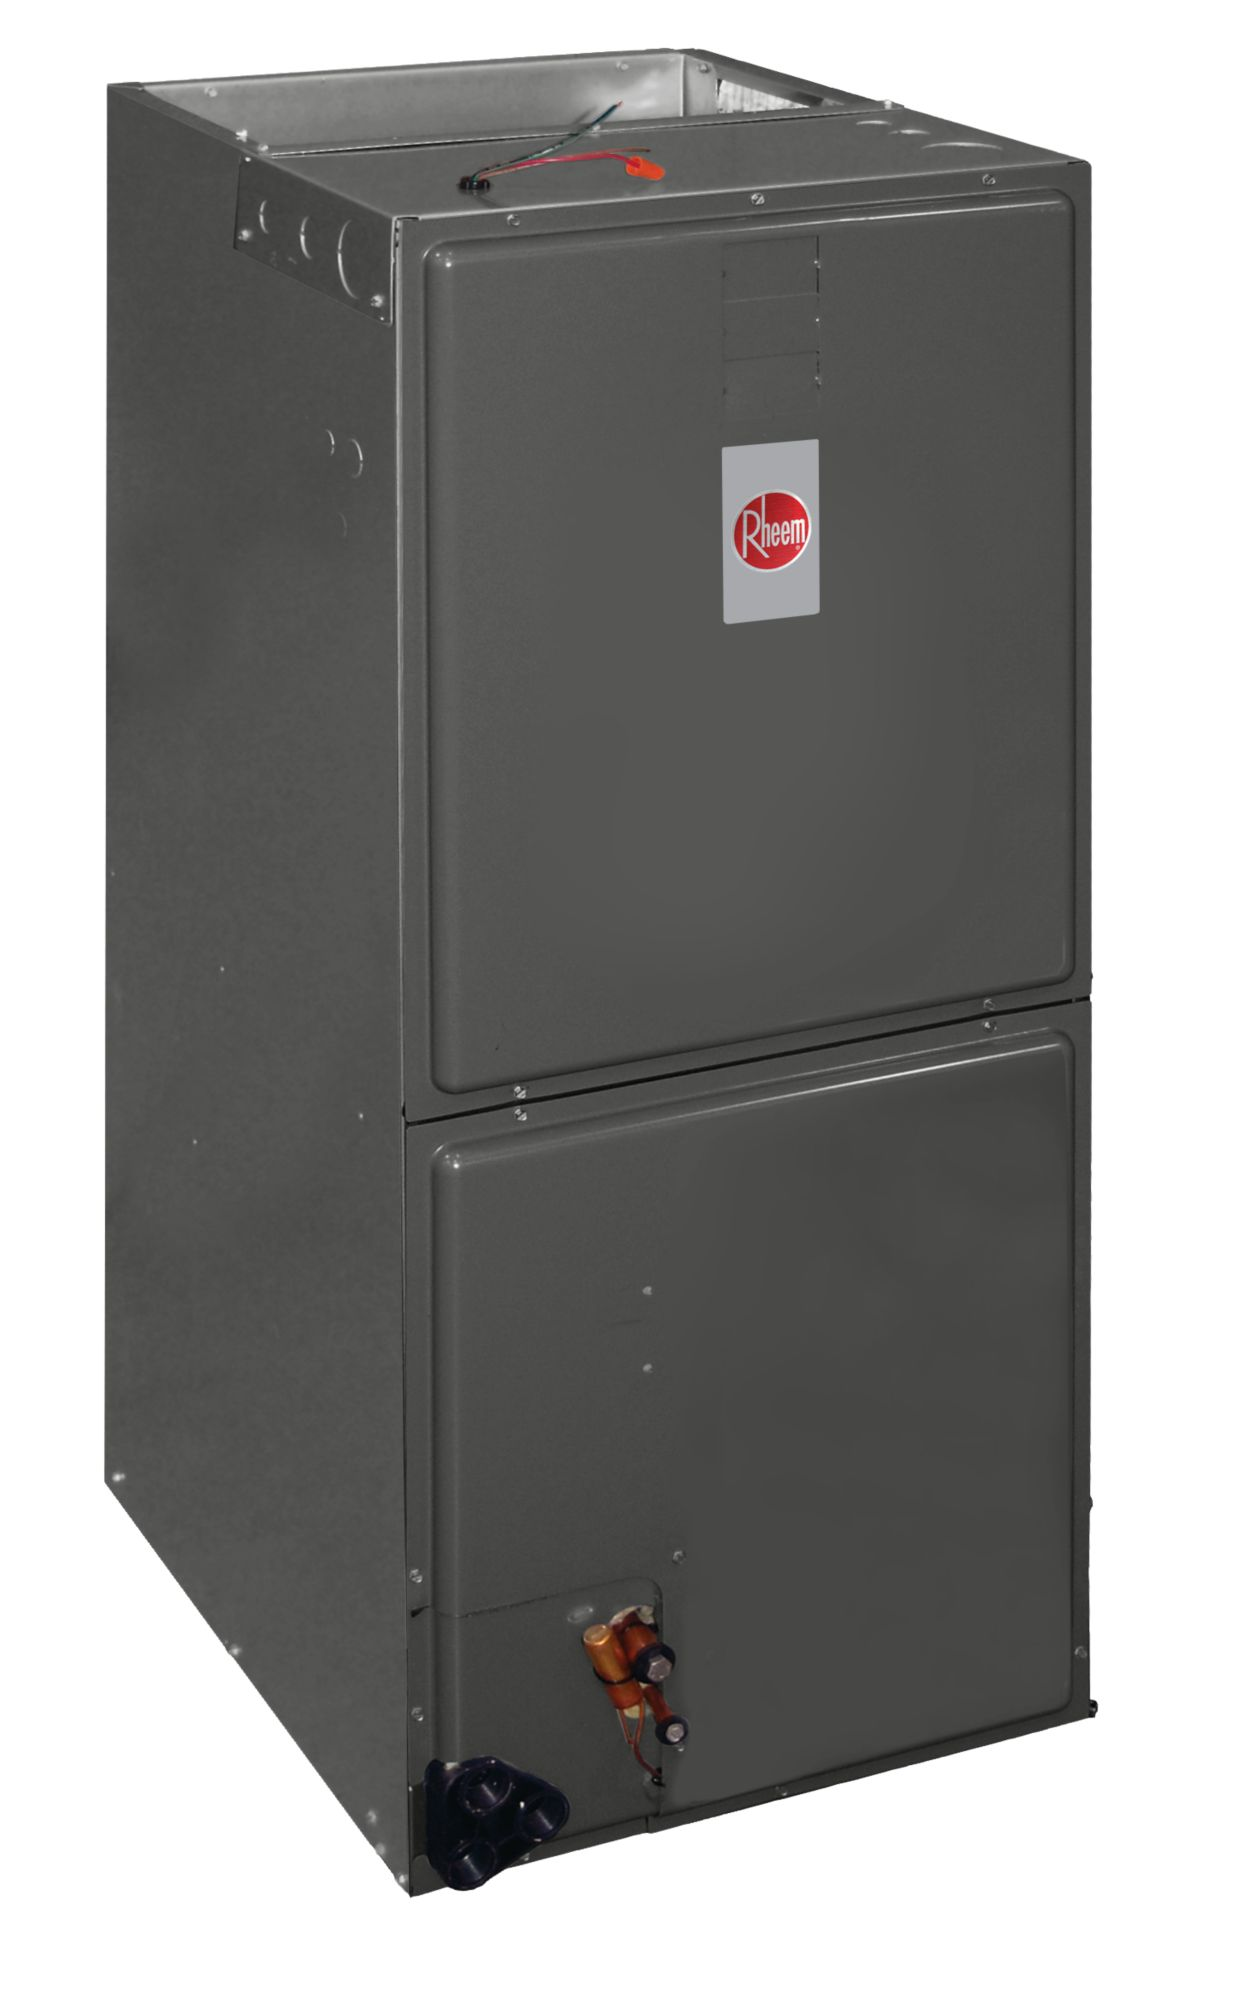 rheem rhll hm3617ja rheem rhll hm3617ja rhll series 3 ton multiposition high efficiency air handler up to 16 seer r410a x13 ecm motor